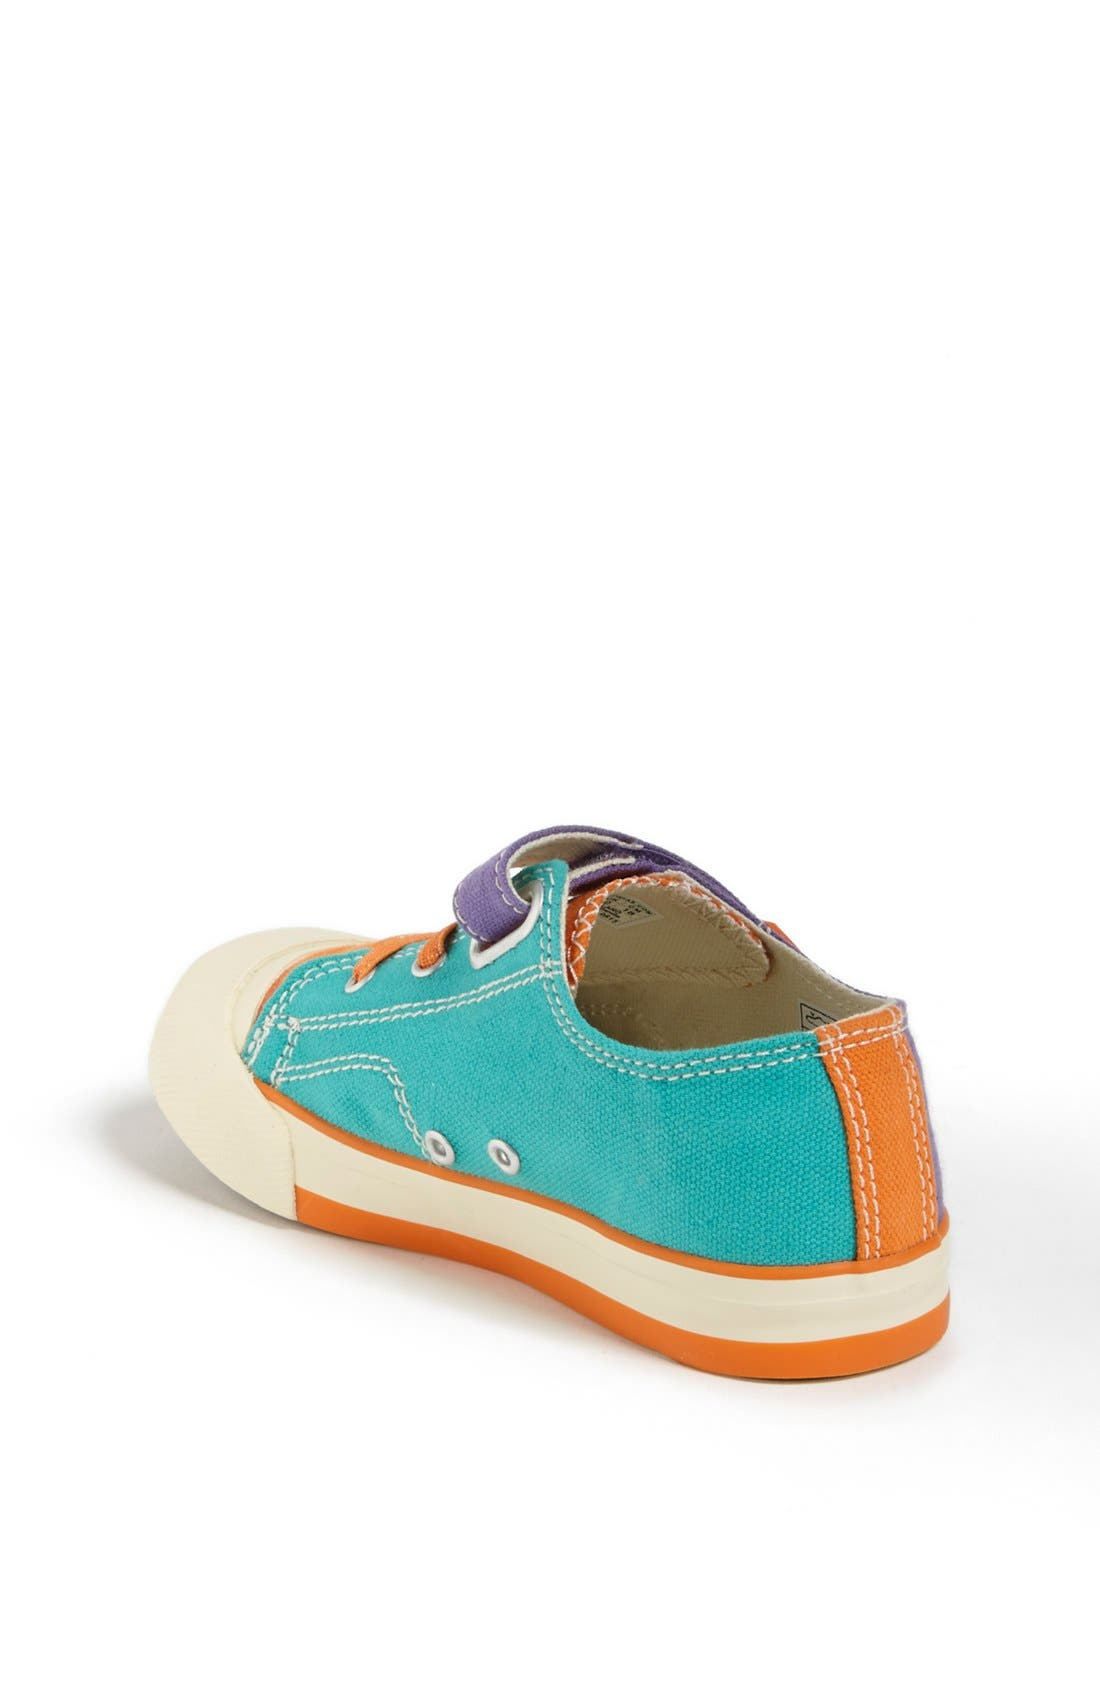 Alternate Image 2  - Keen 'Coronado' Sneaker (Toddler & Little Kid)